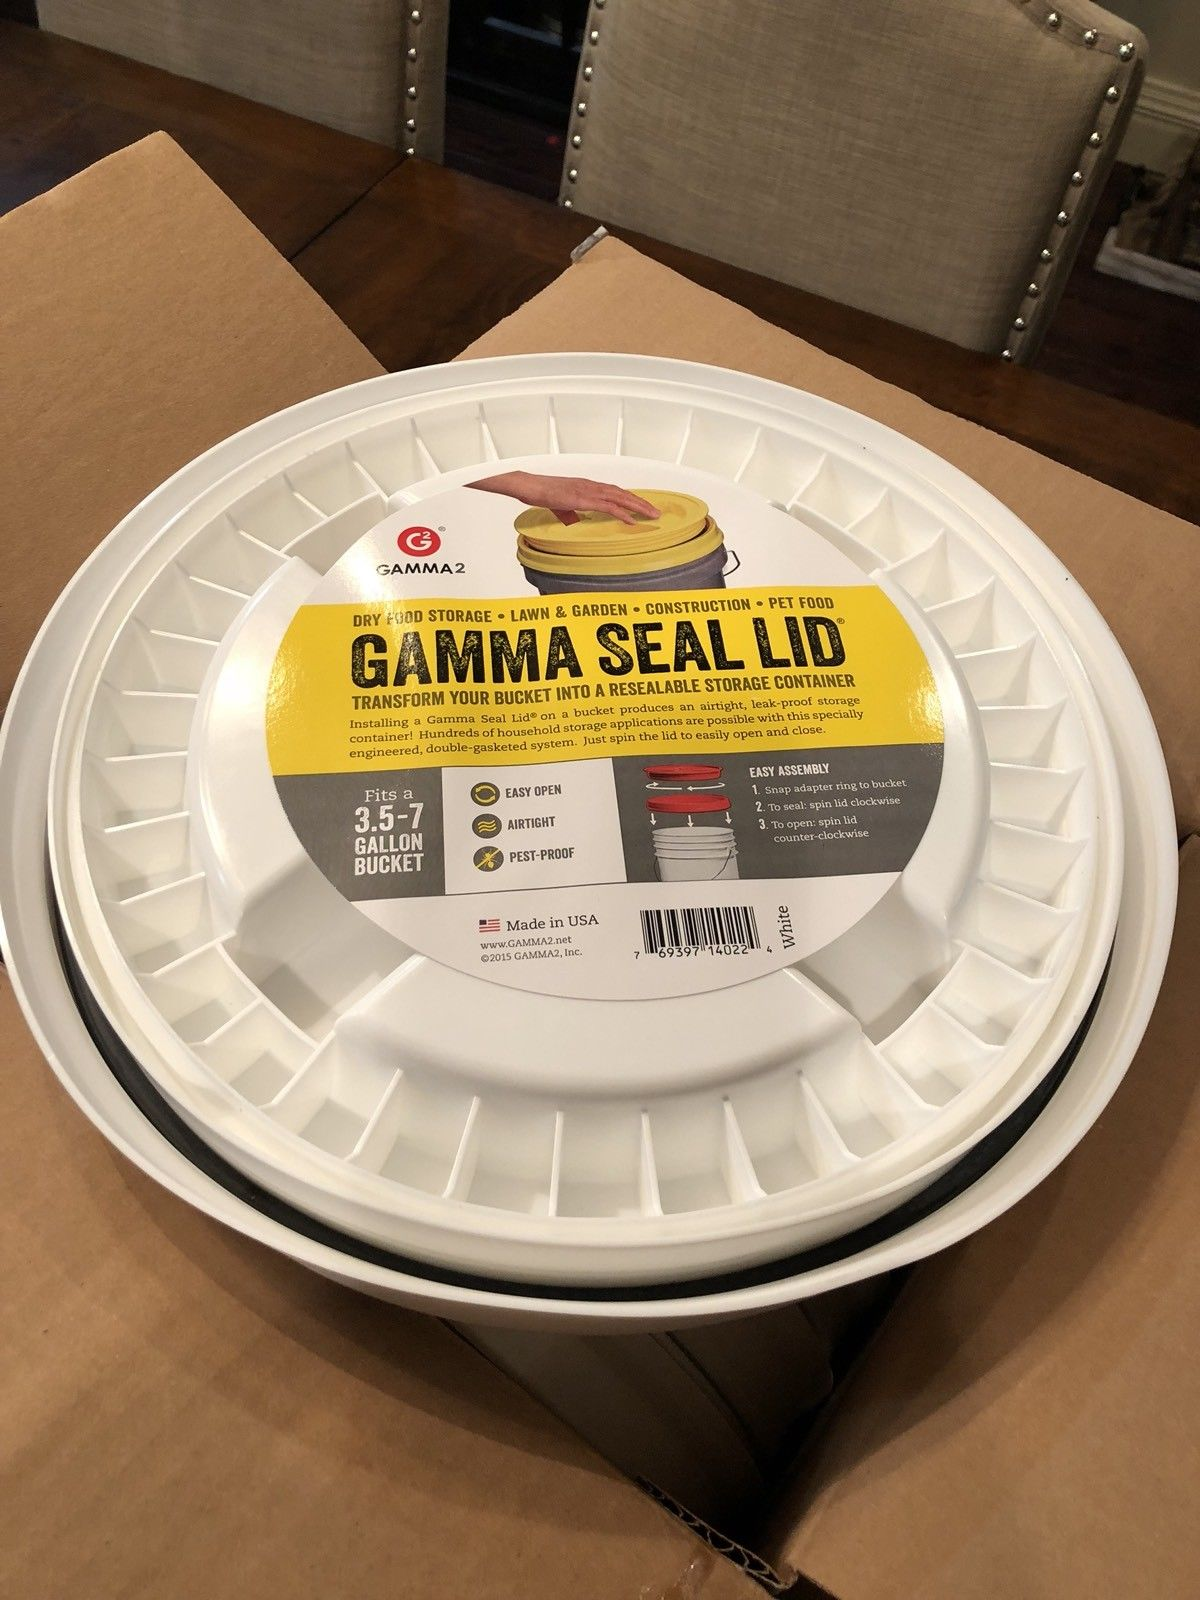 6-PACK! Gamma Seal Screw On Lids 3.5 -7 Gallon 5 Bucket Food Storage Airtight 1